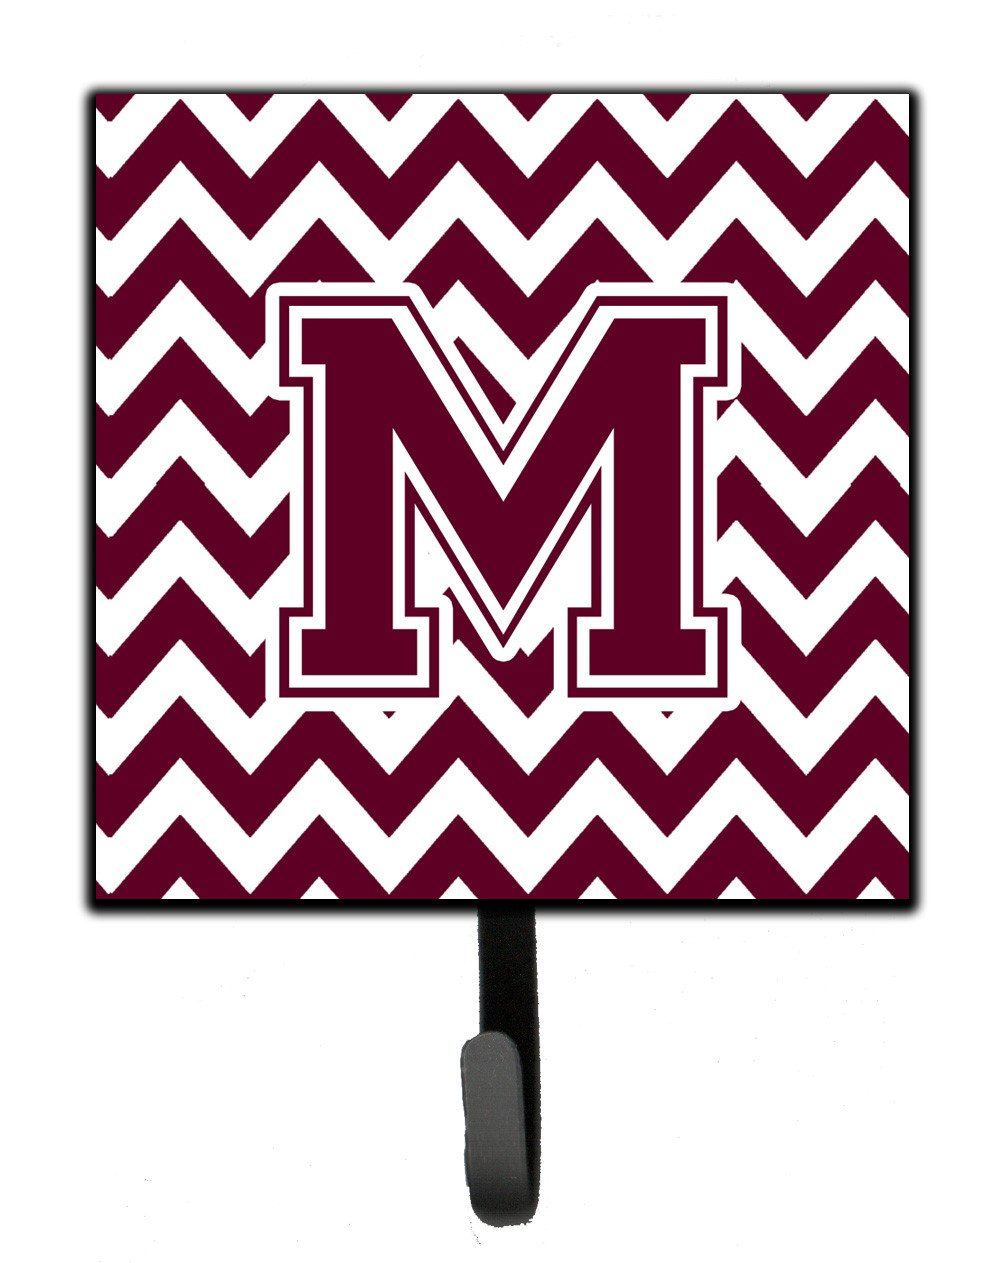 Letter M Chevron Maroon and White  Leash or Key Holder CJ1051-MSH4 by Caroline's Treasures